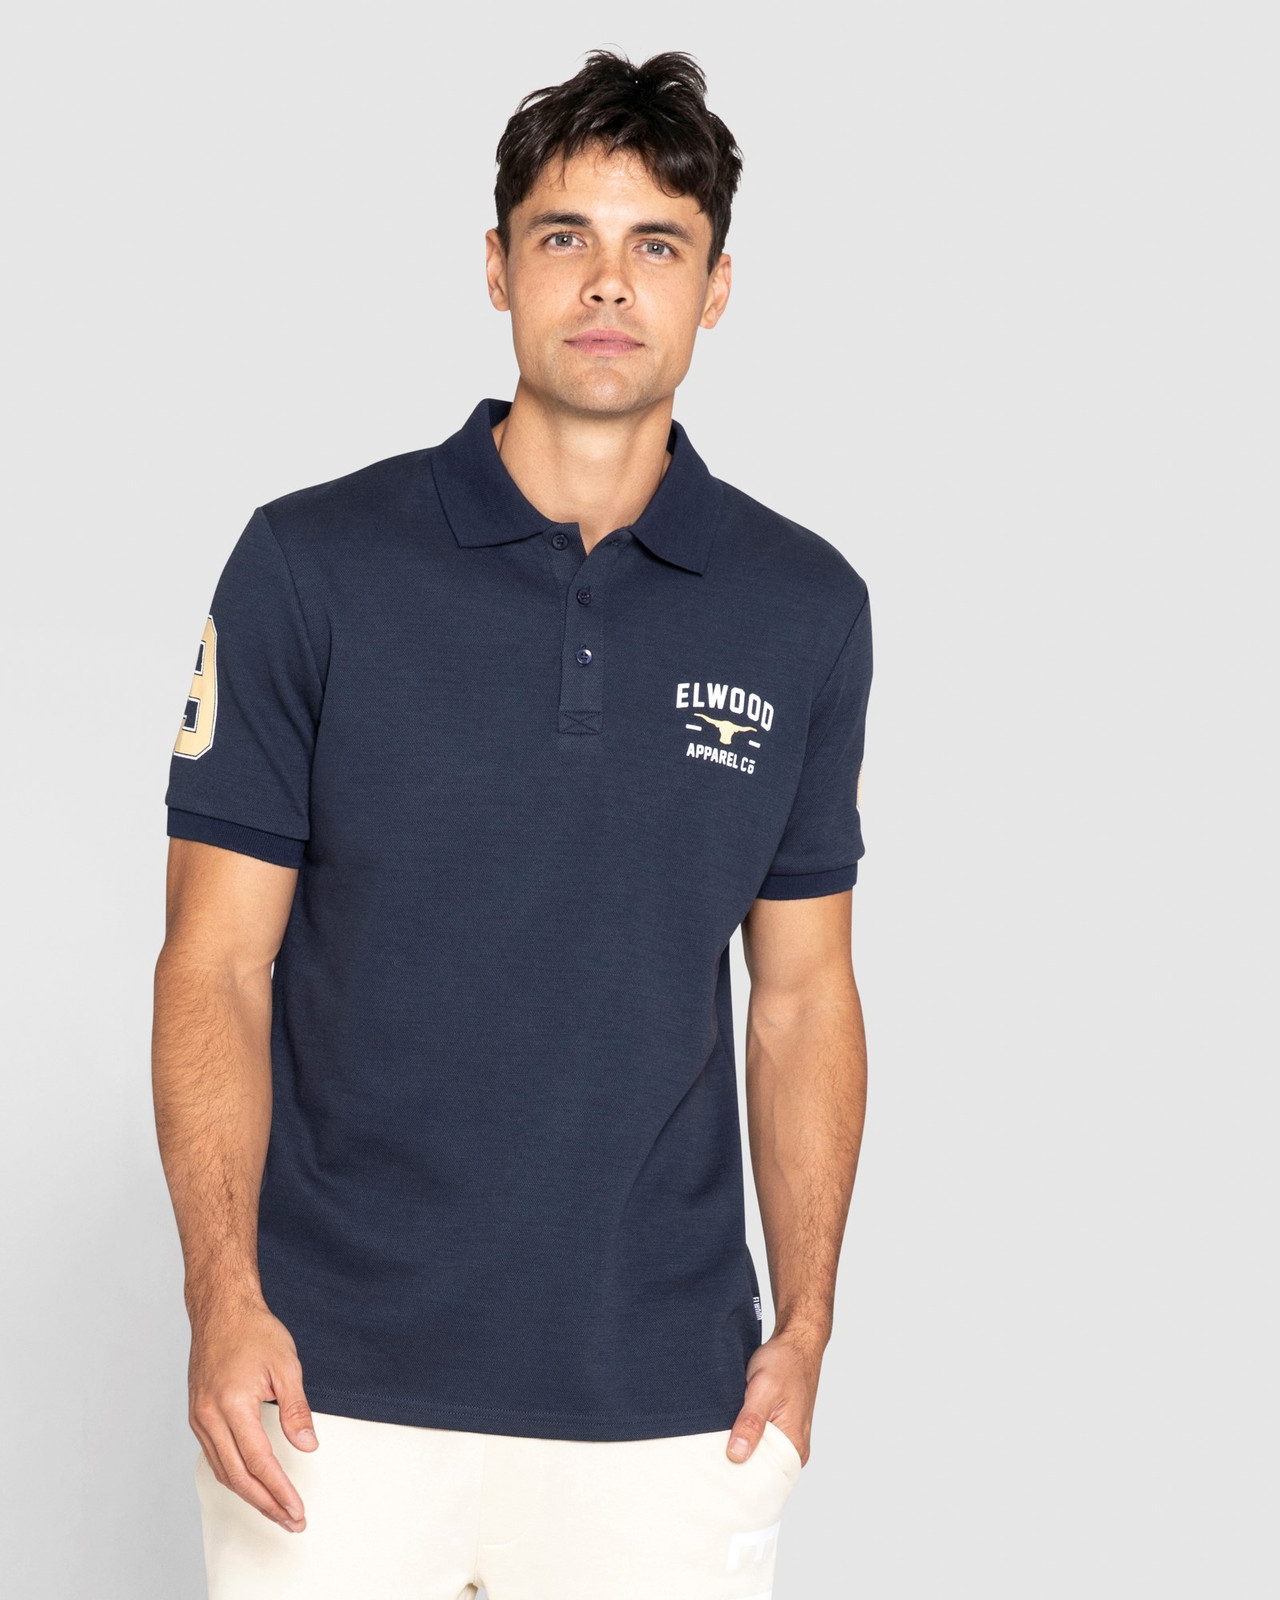 Elwood Mens Heritage Polo Red Logo Navy